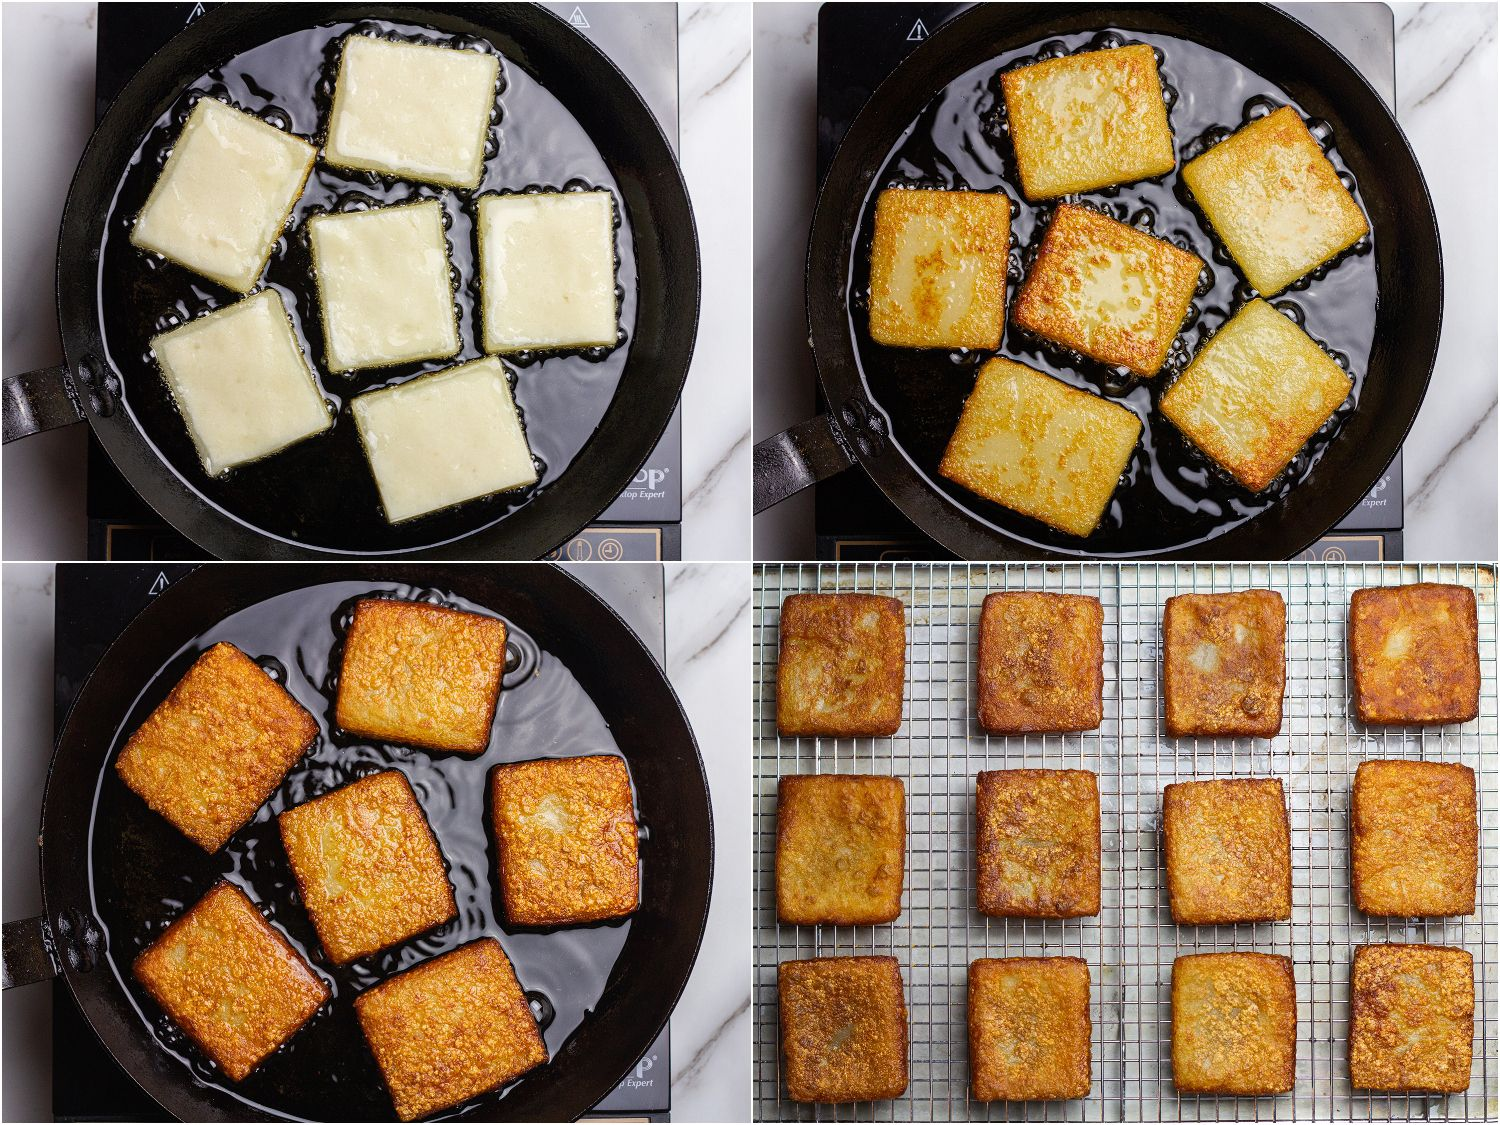 Collage showing steps of shallow frying potato mochi in a cast iron skillet